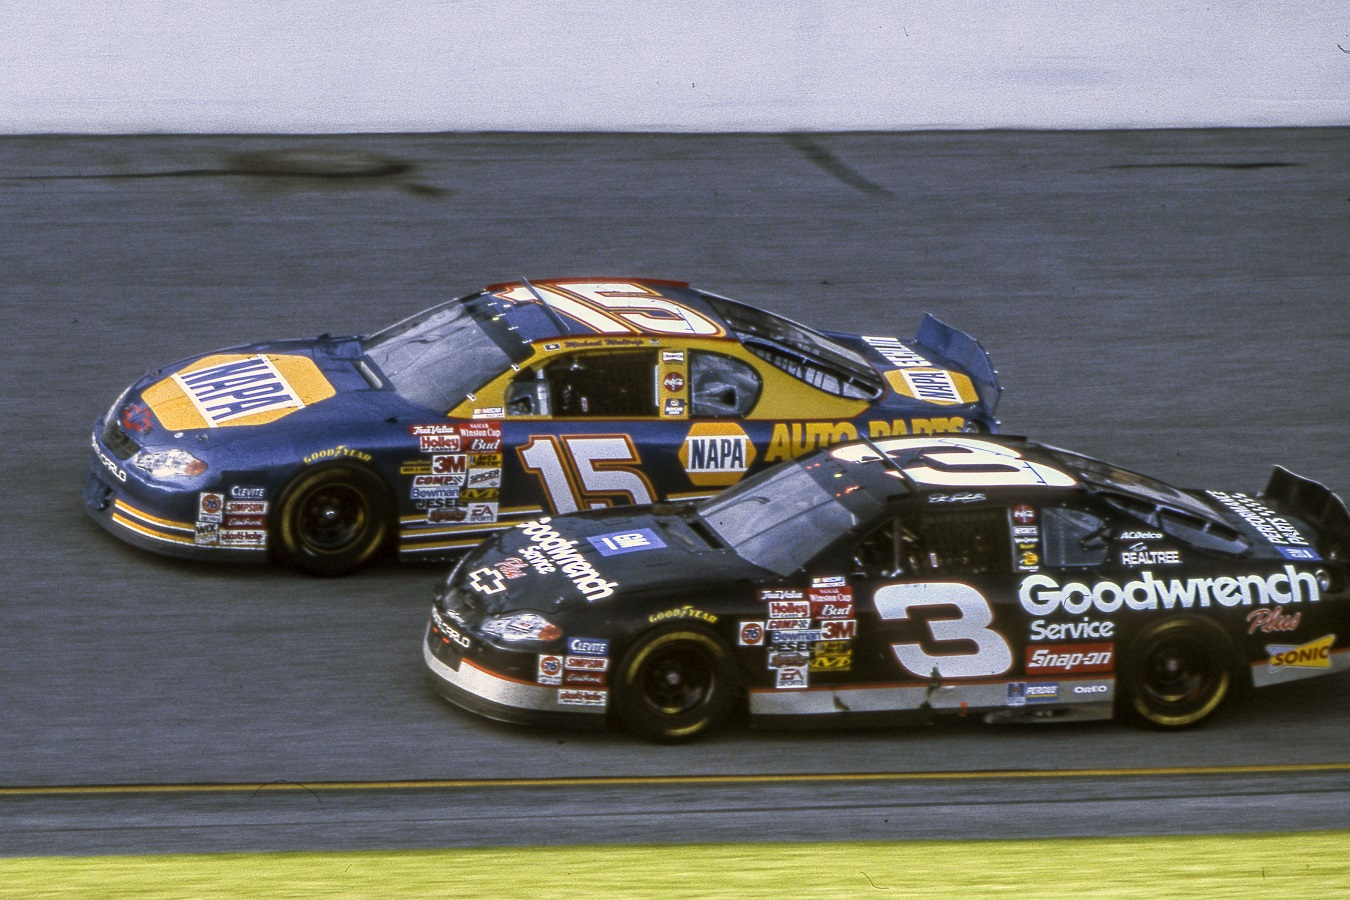 Michael Waltrip and Dale Earnhardt at the 2001 Daytona 500